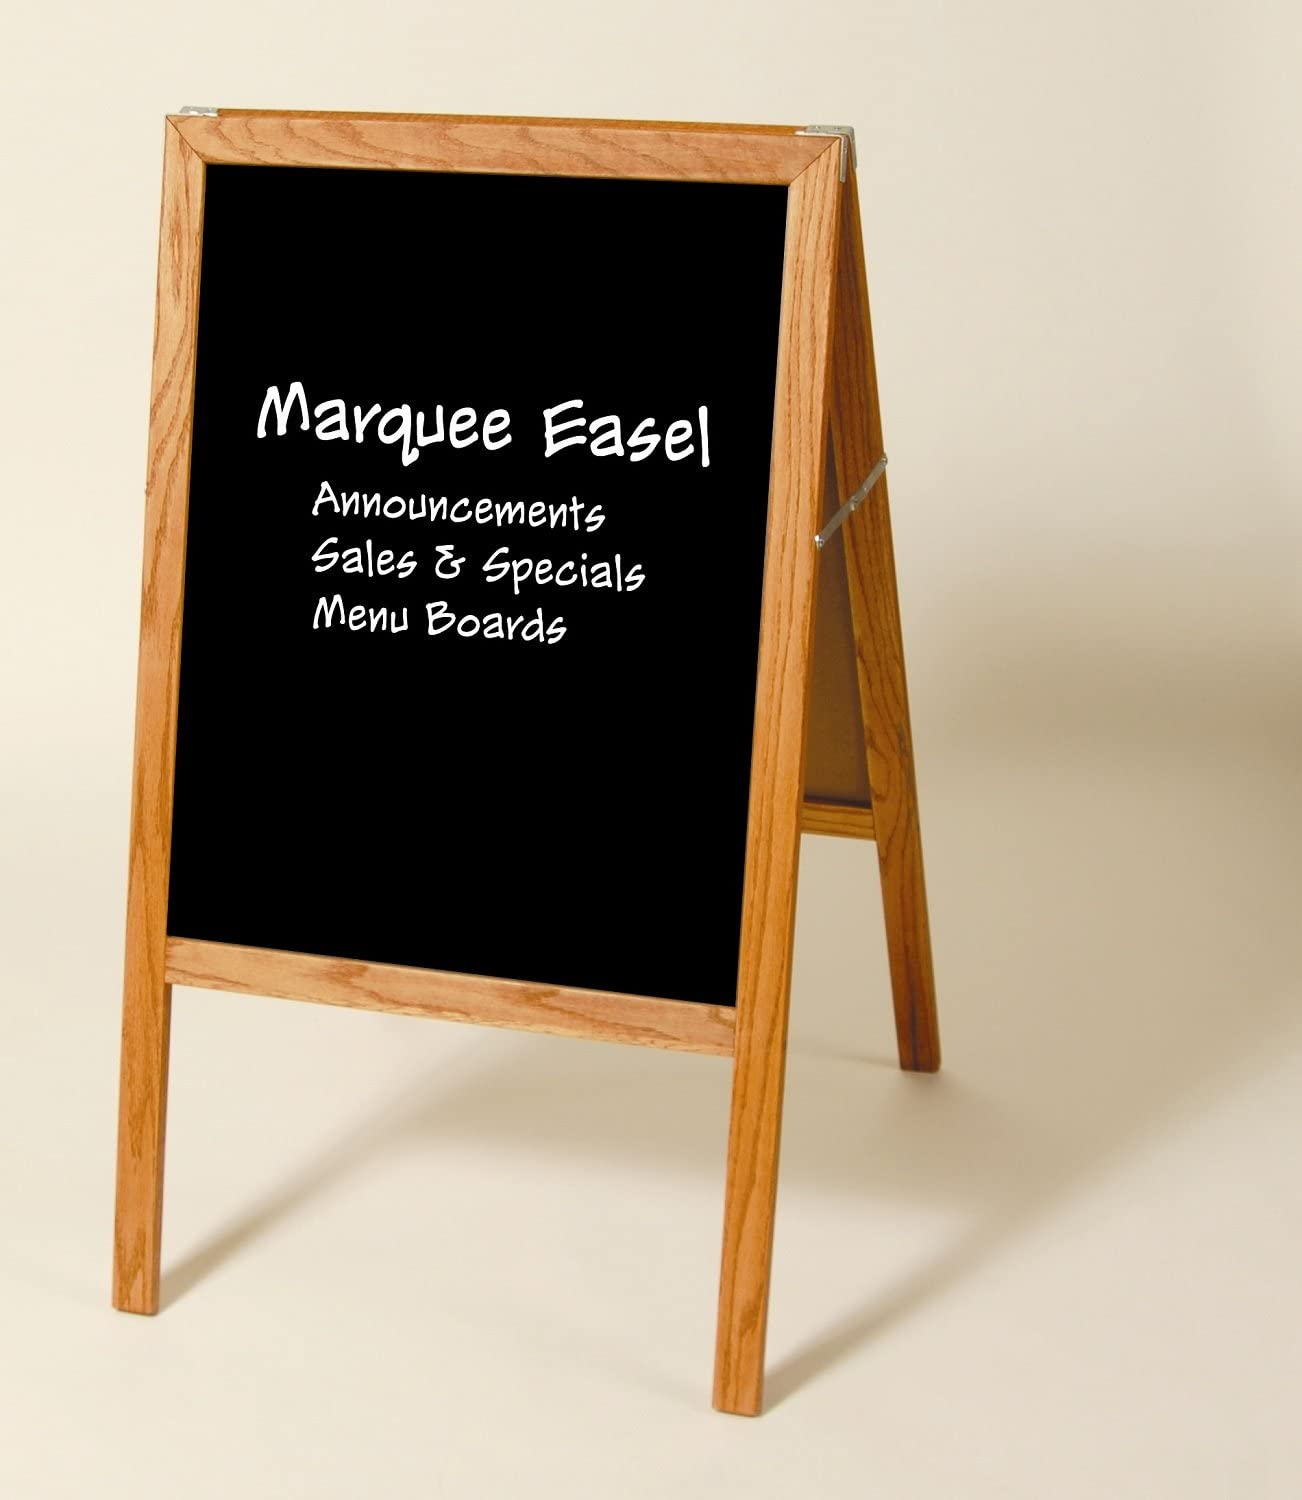 Folding Minneapolis Mall Two-sided Marquee Stained Wood - Easel Regular discount Chalkboards Black